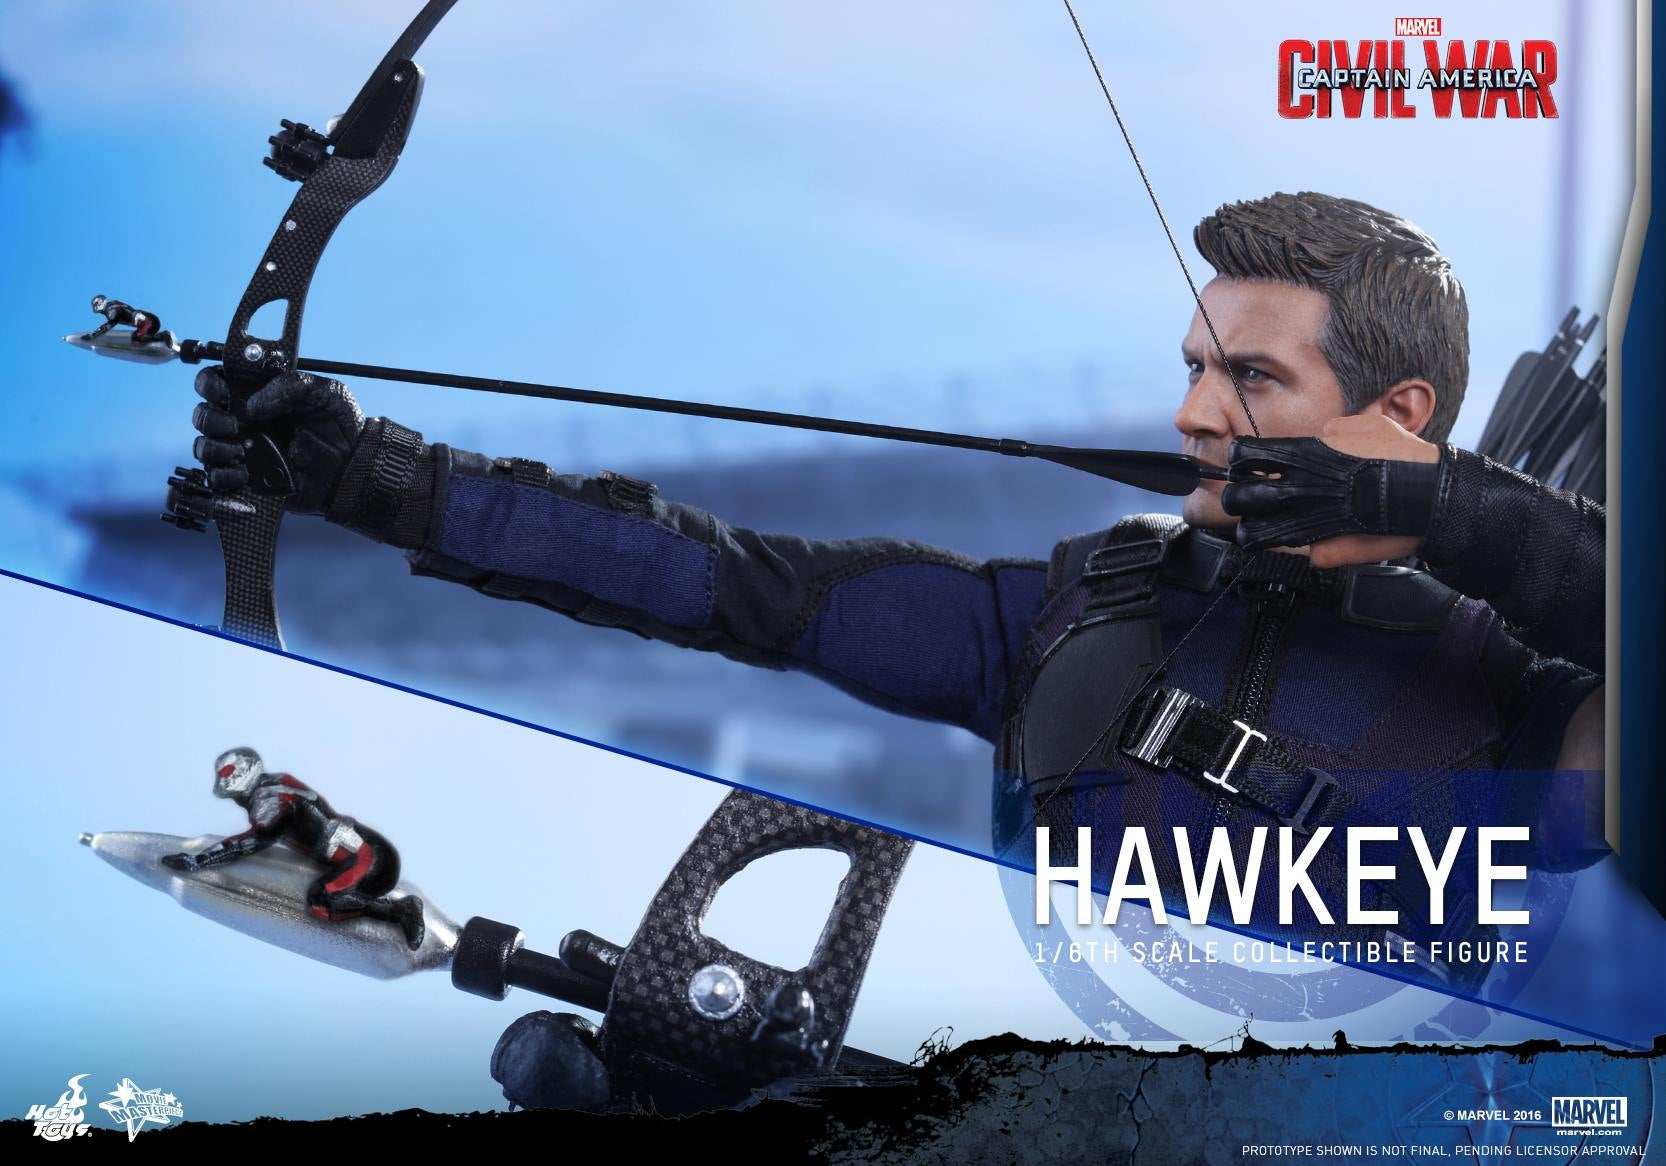 Hot Toys' New Ant-Man Figure Comes With A Giant Hawkeye